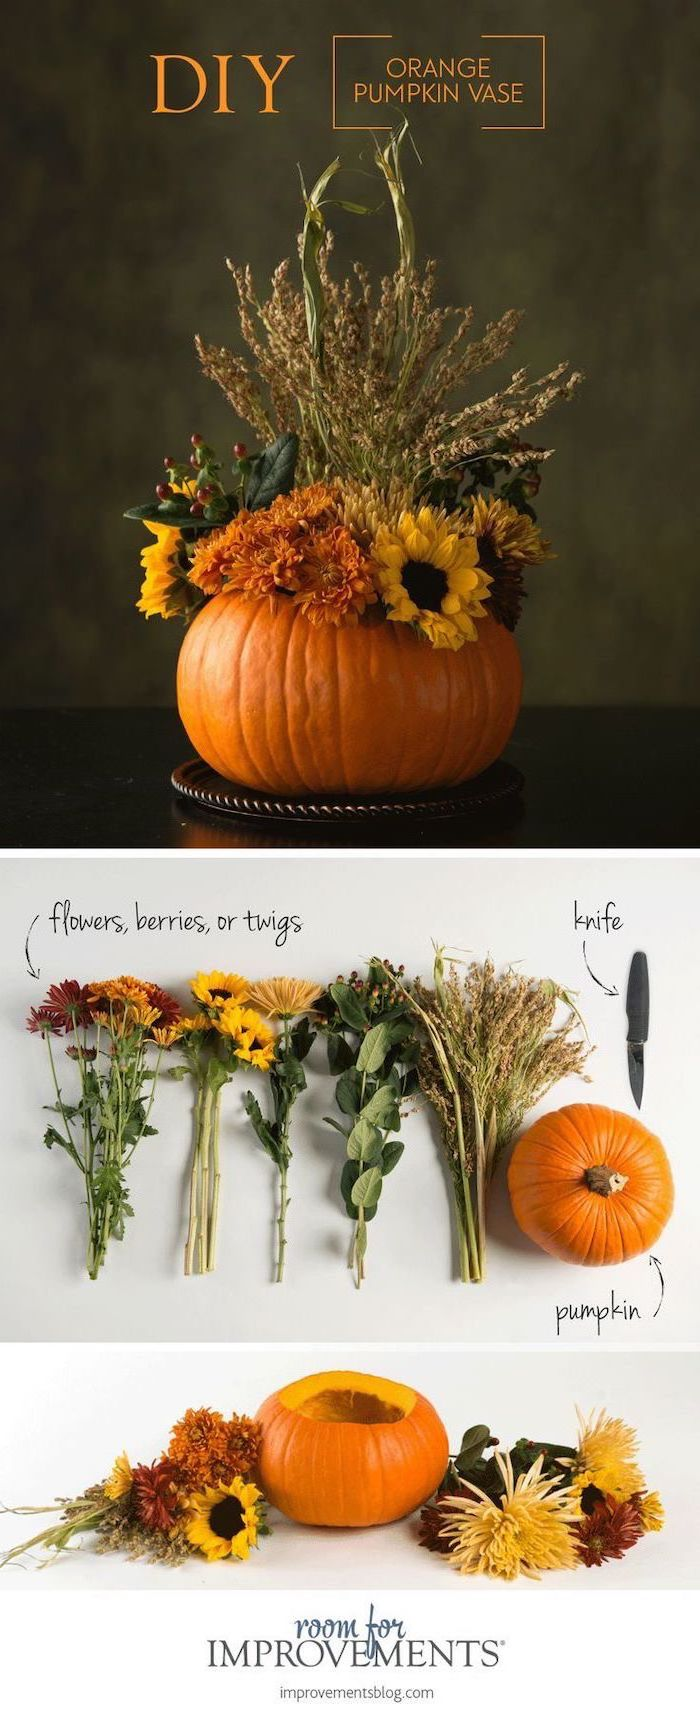 diy orange pumpkin vase, autumn decor, step by step, diy tutorial, faux flowers, photo collage